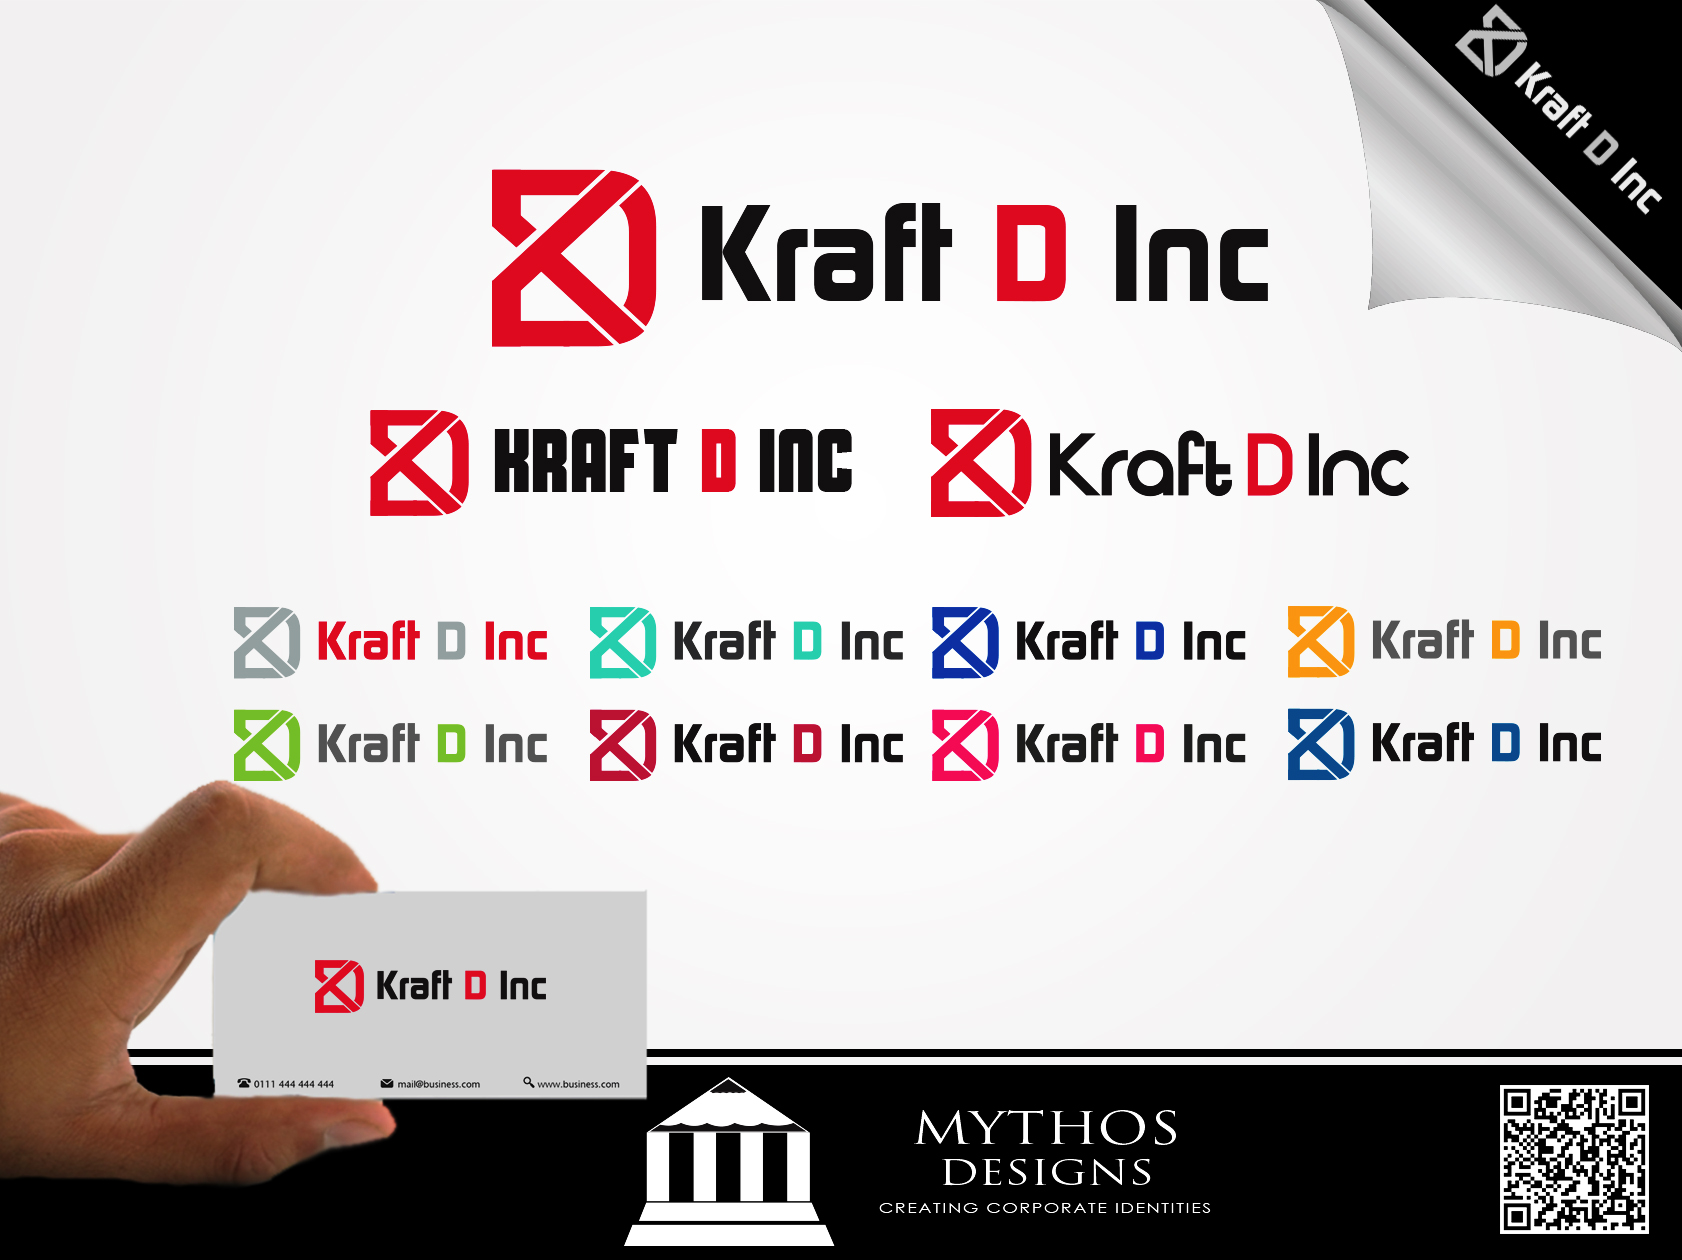 Logo Design by Mythos Designs - Entry No. 161 in the Logo Design Contest Unique Logo Design Wanted for Kraft D Inc.